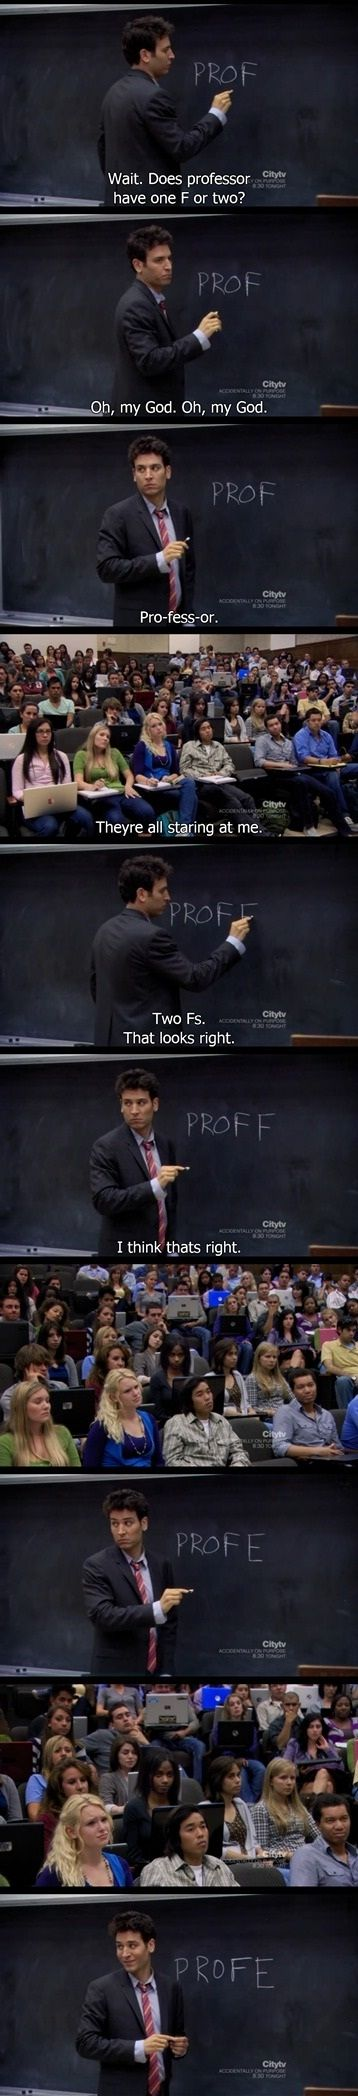 """Professor"" or ""Proffessor"" Ted Mosby How I Met Your Mother (HIMYM)"